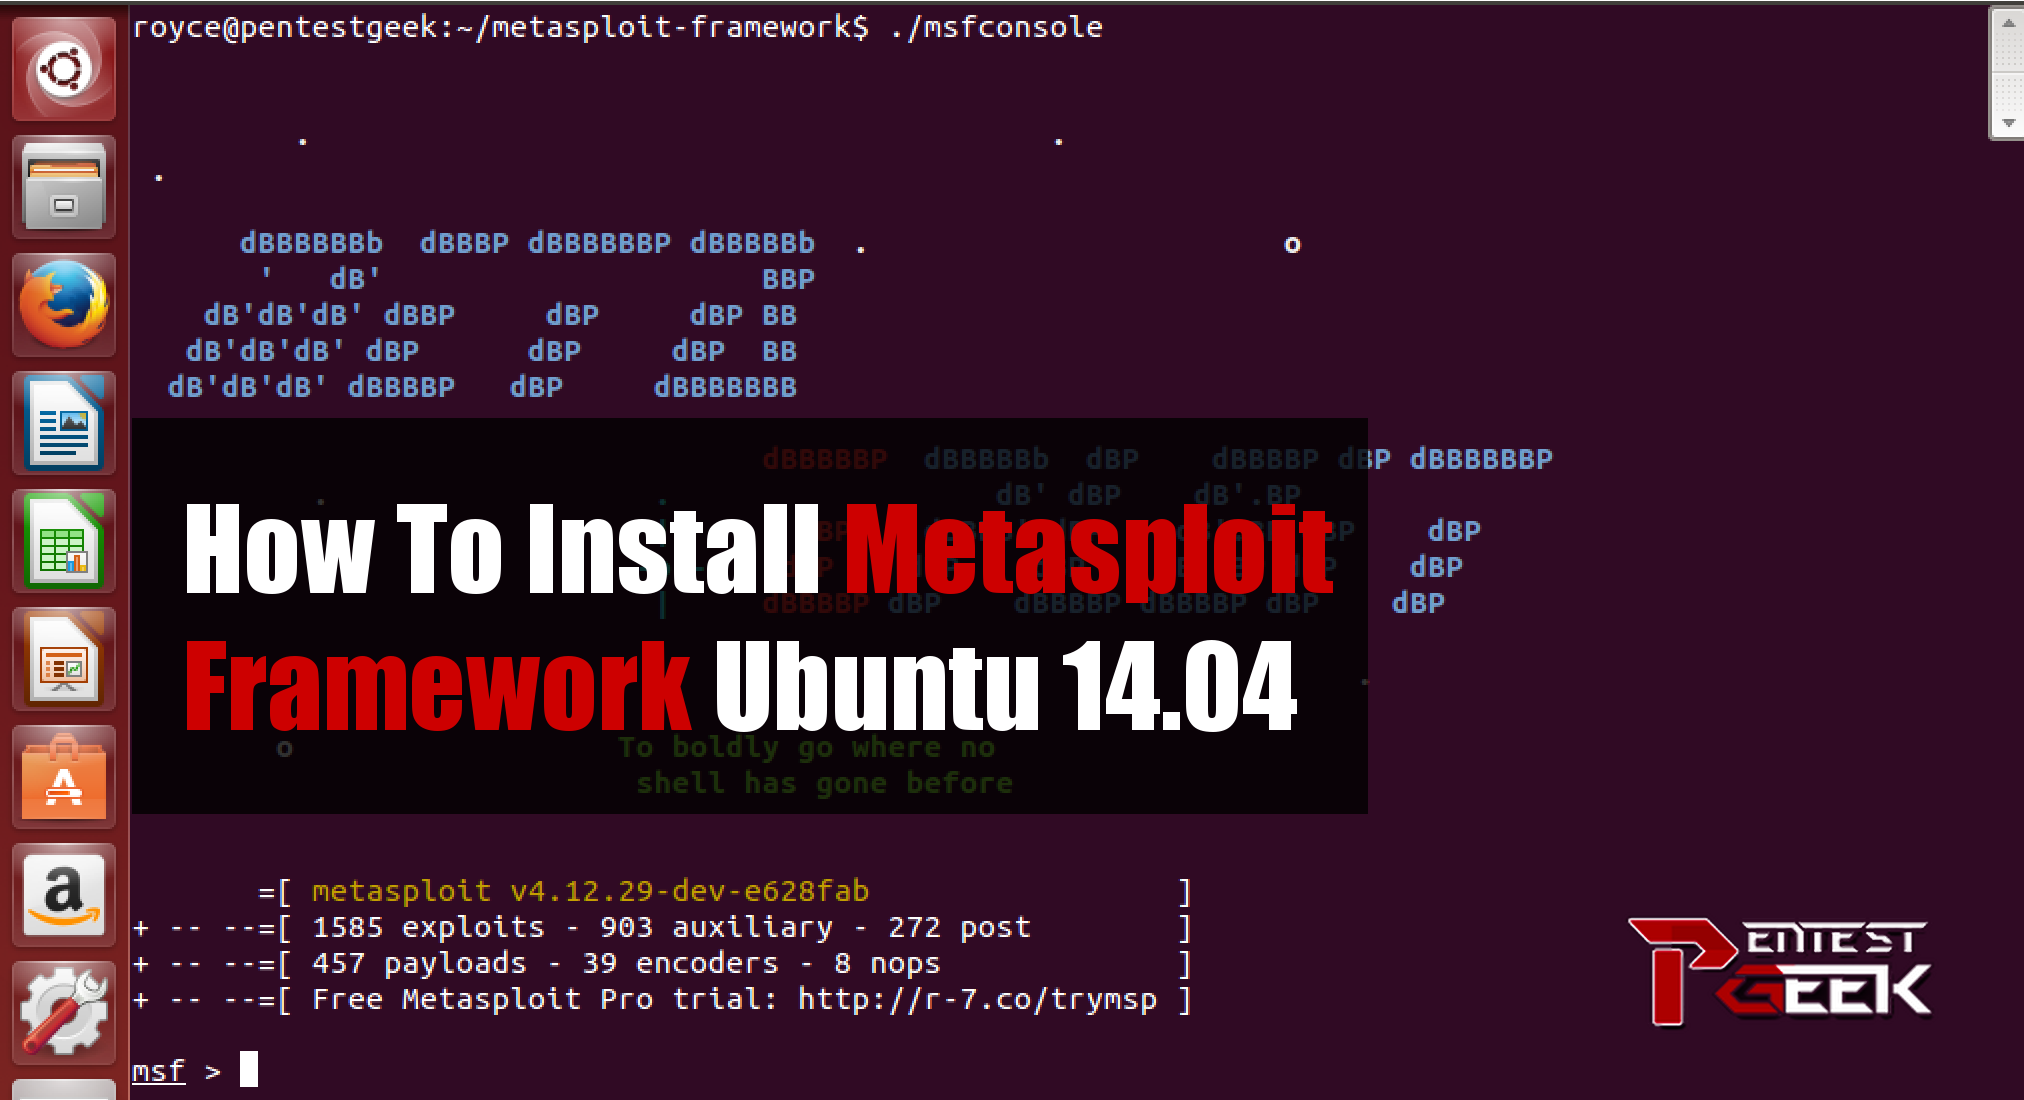 How-to-install-metasploit-framework-ubuntu-14-04